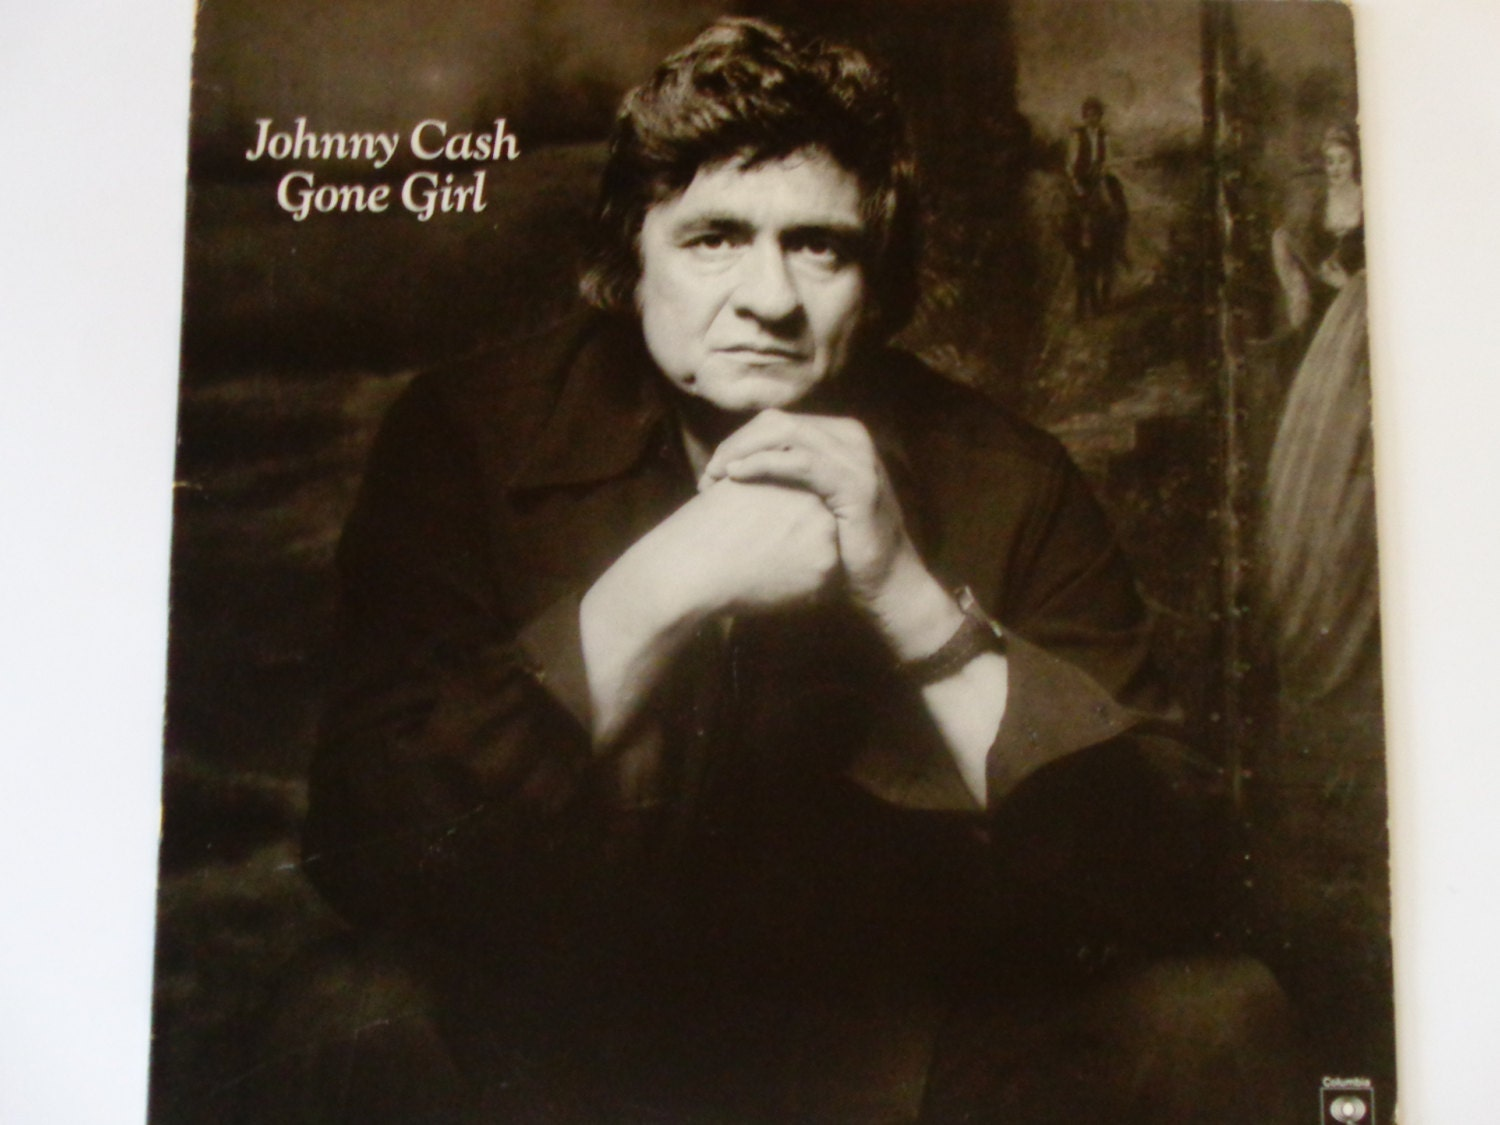 CASH JOHNNY - THE GAMBLER LYRICS